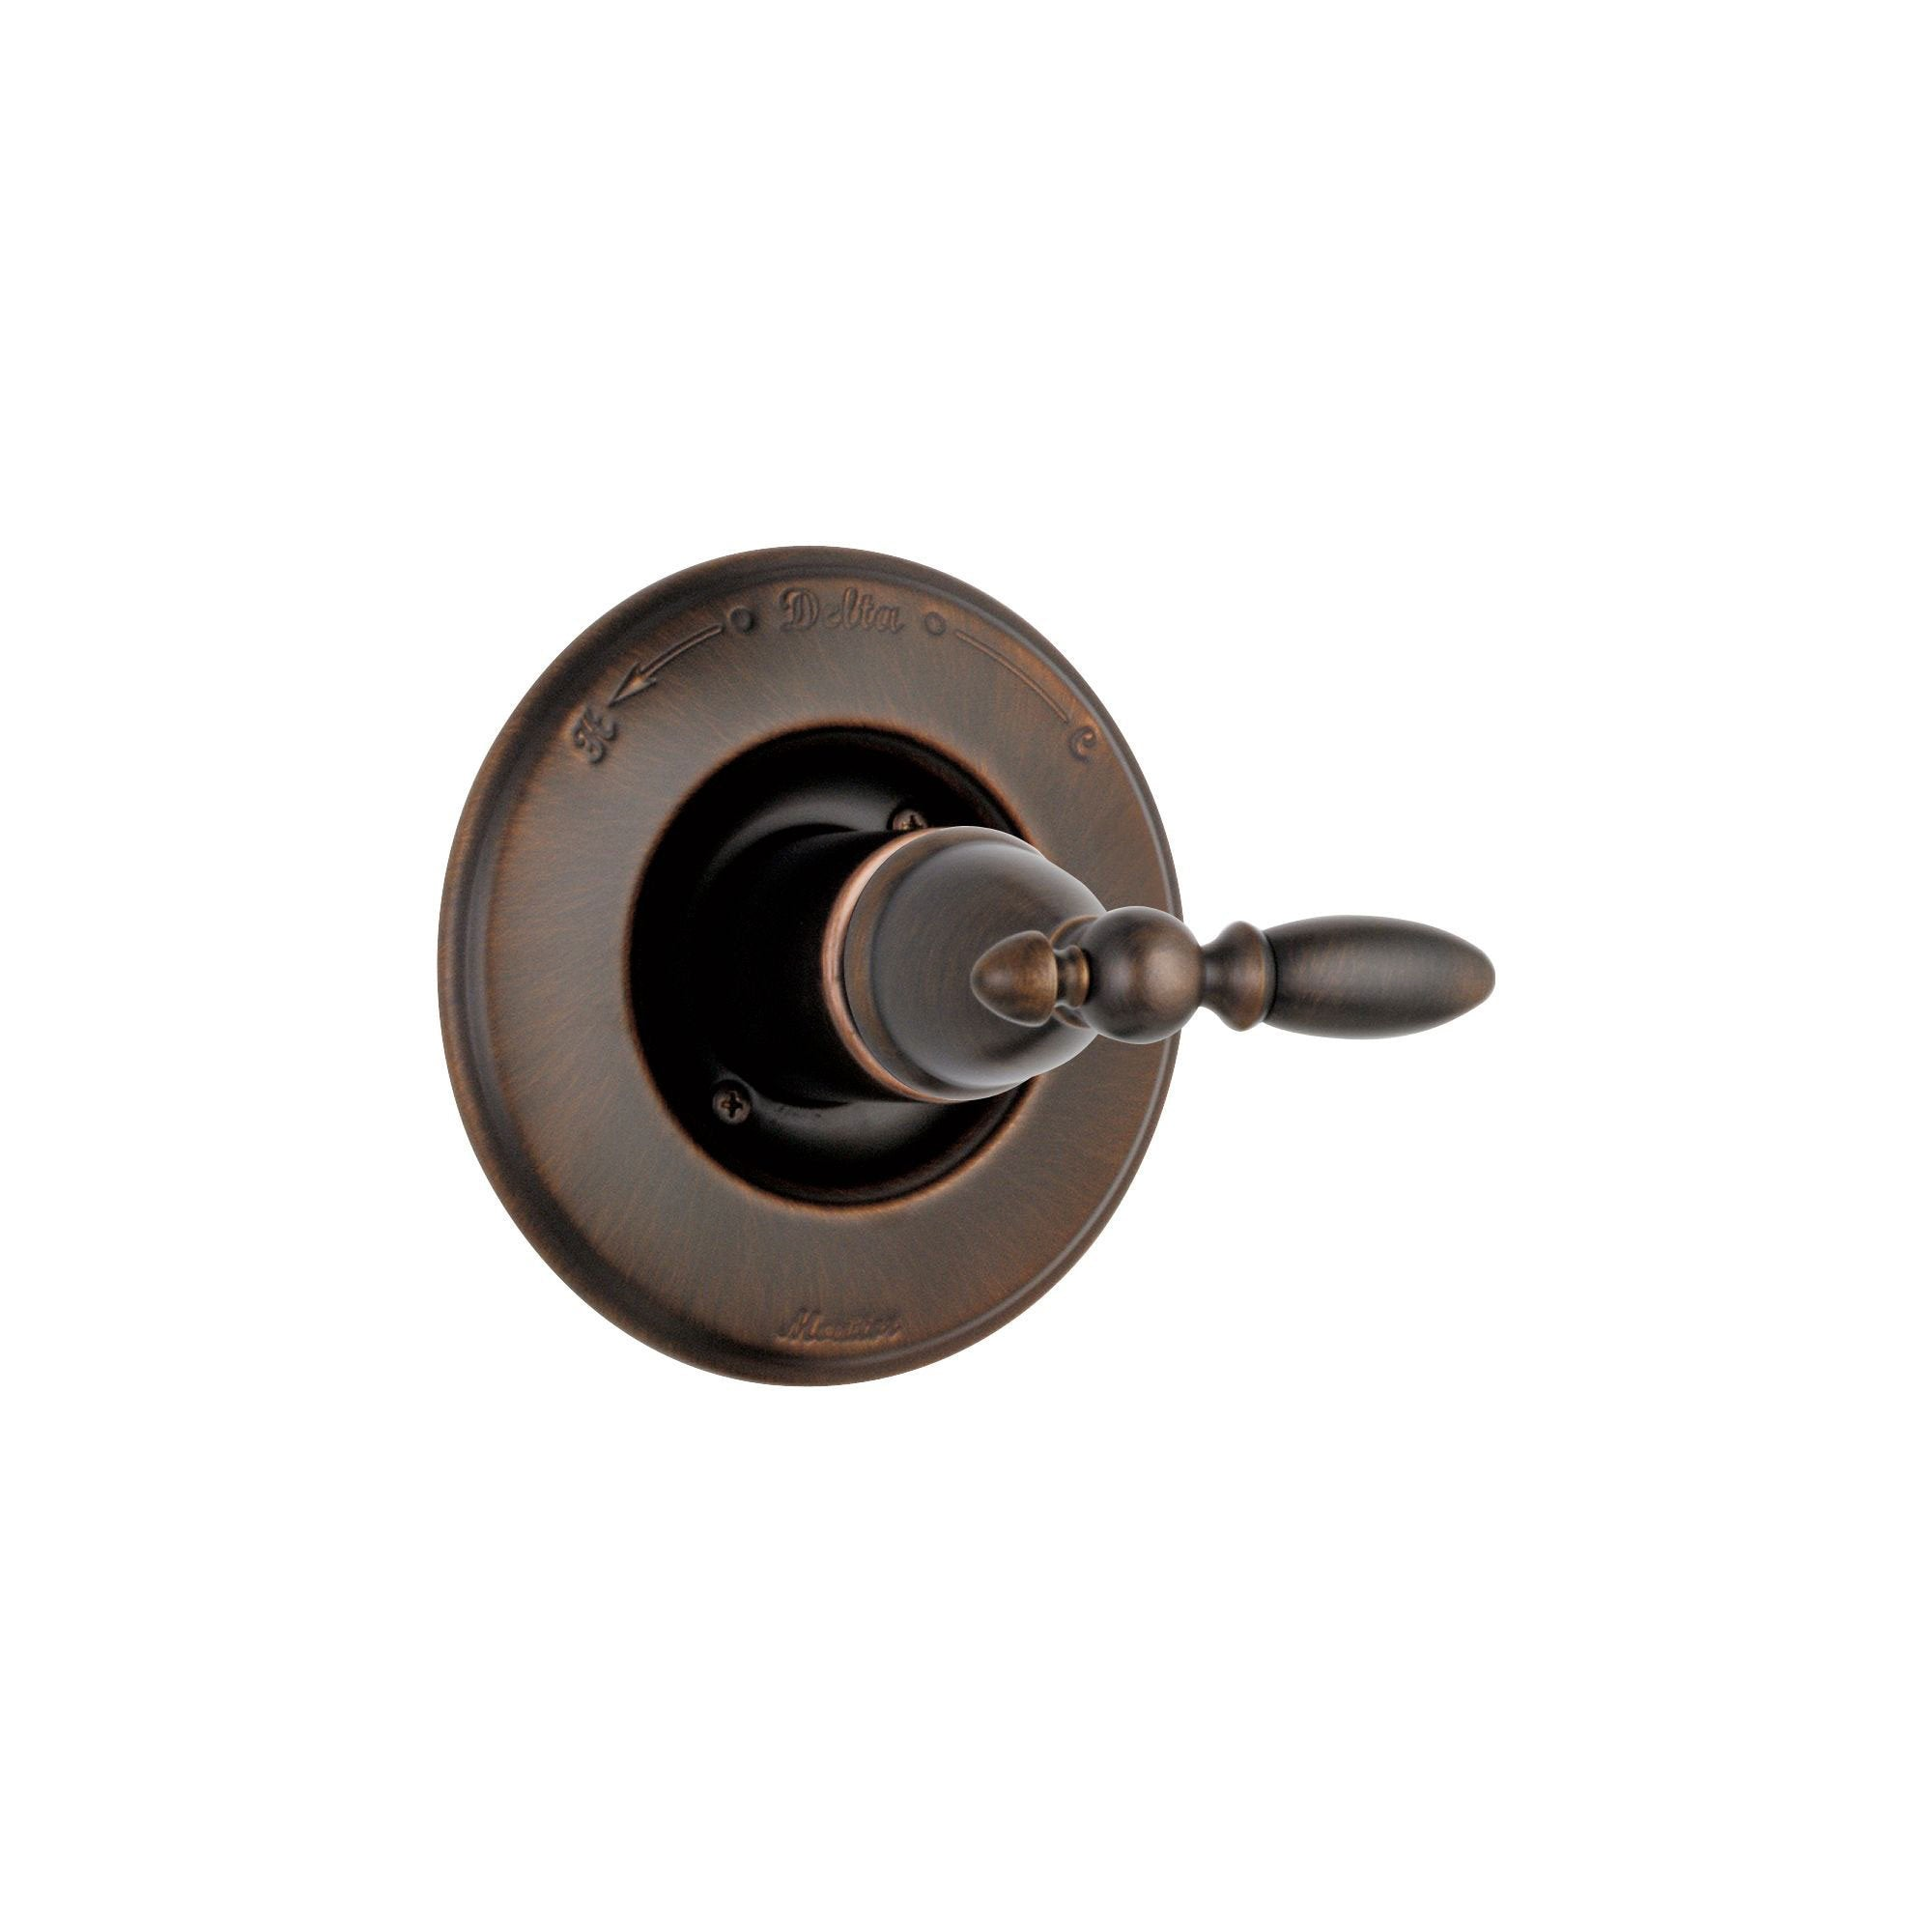 Delta Victorian Monitor 14 Series Venetian Bronze Finish Pressure Balanced Shower Faucet Control INCLUDES Rough-in Valve with Stops and Single Lever Handle D1265V